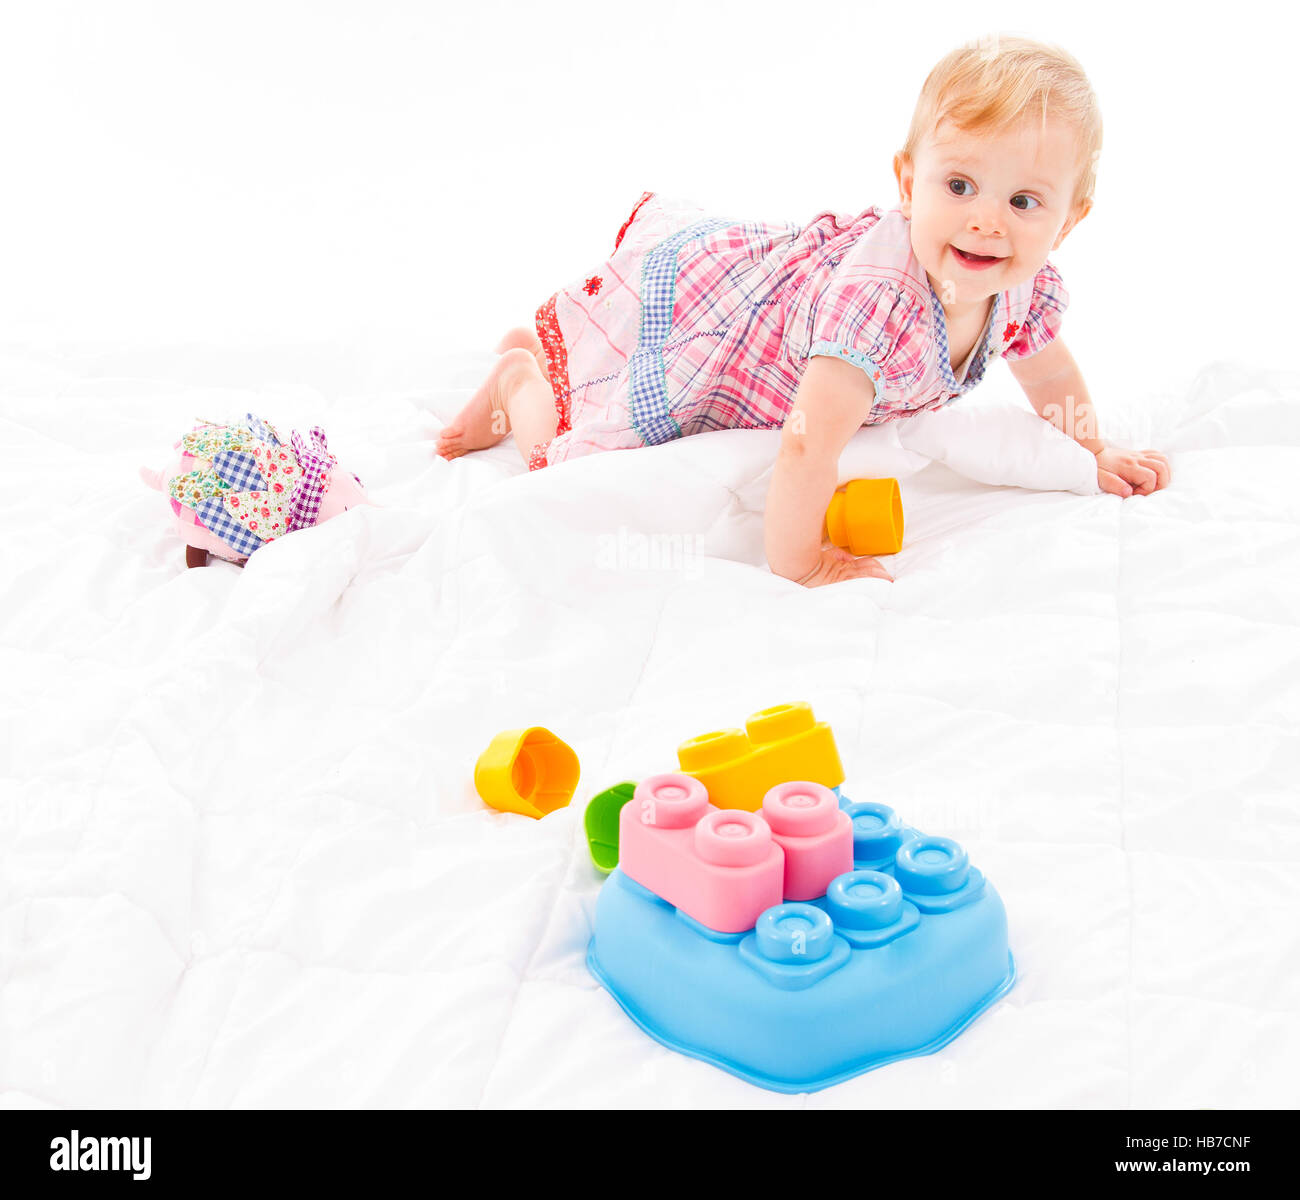 cute baby girl wearing a dress is crawling  on a white blanket  with some building blocks on it - Stock Image